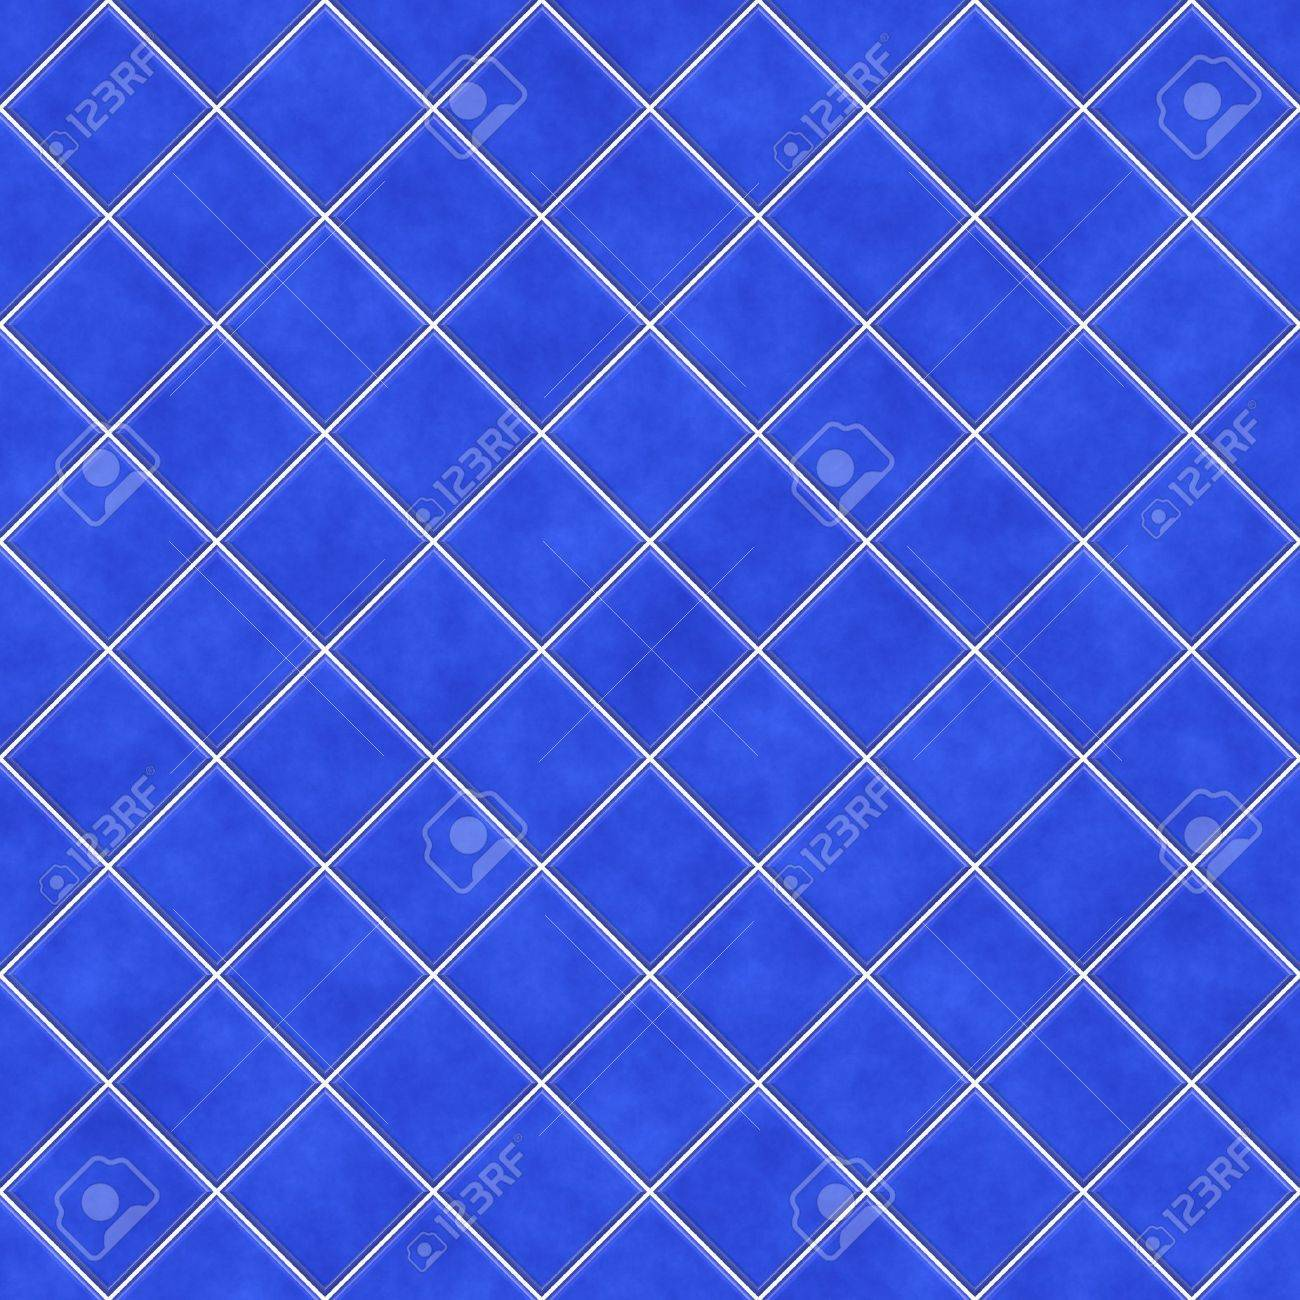 Blue Tiles Texture Background Kitchen Bathroom Or Pool Concept